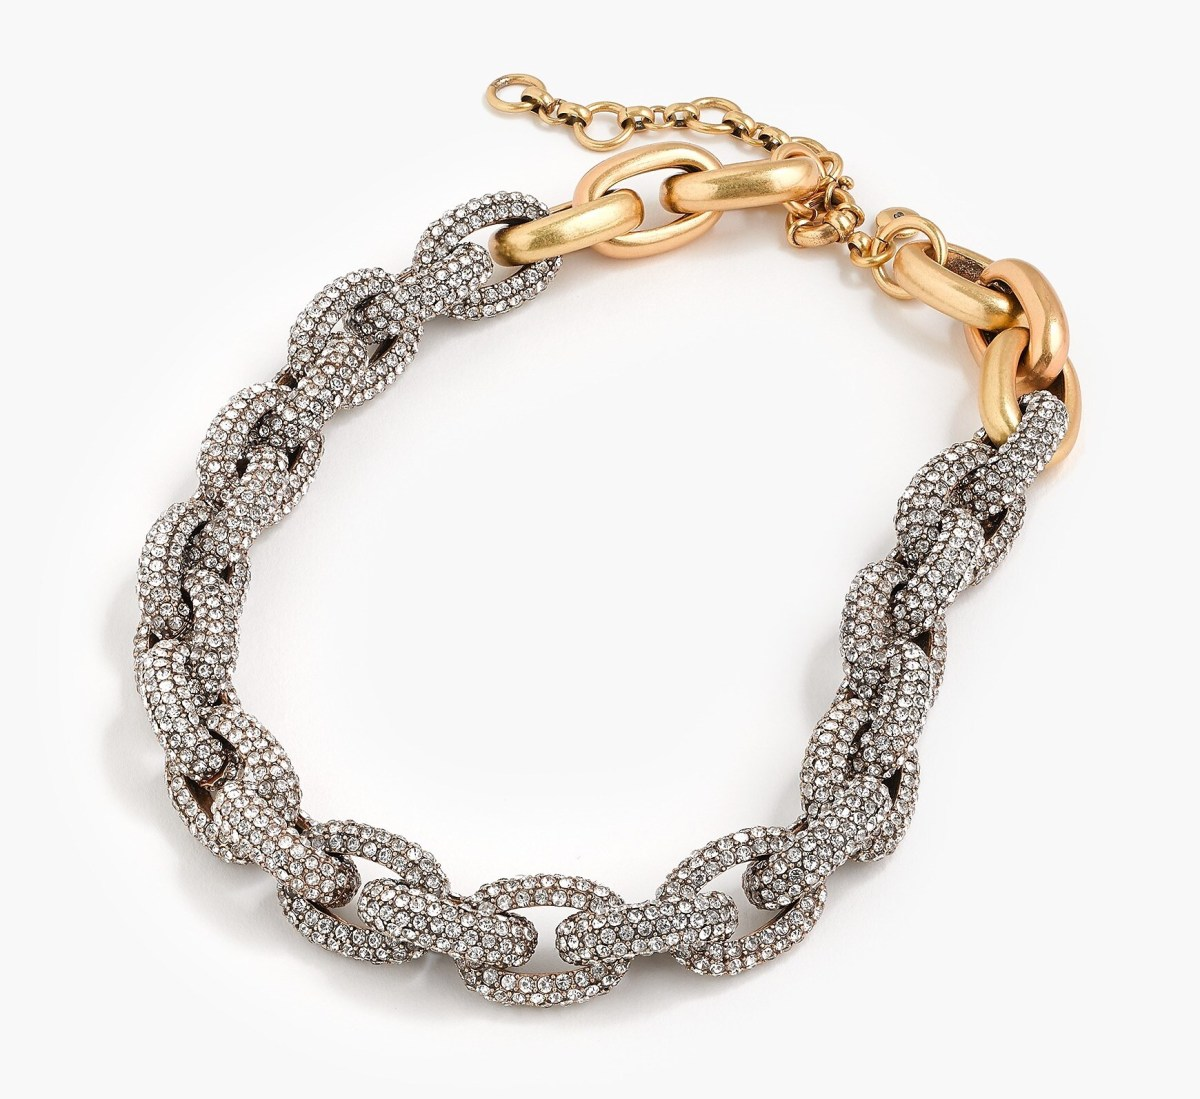 J.Crew Allover Pavé Crystal Oval Link Necklace, $118, available here.